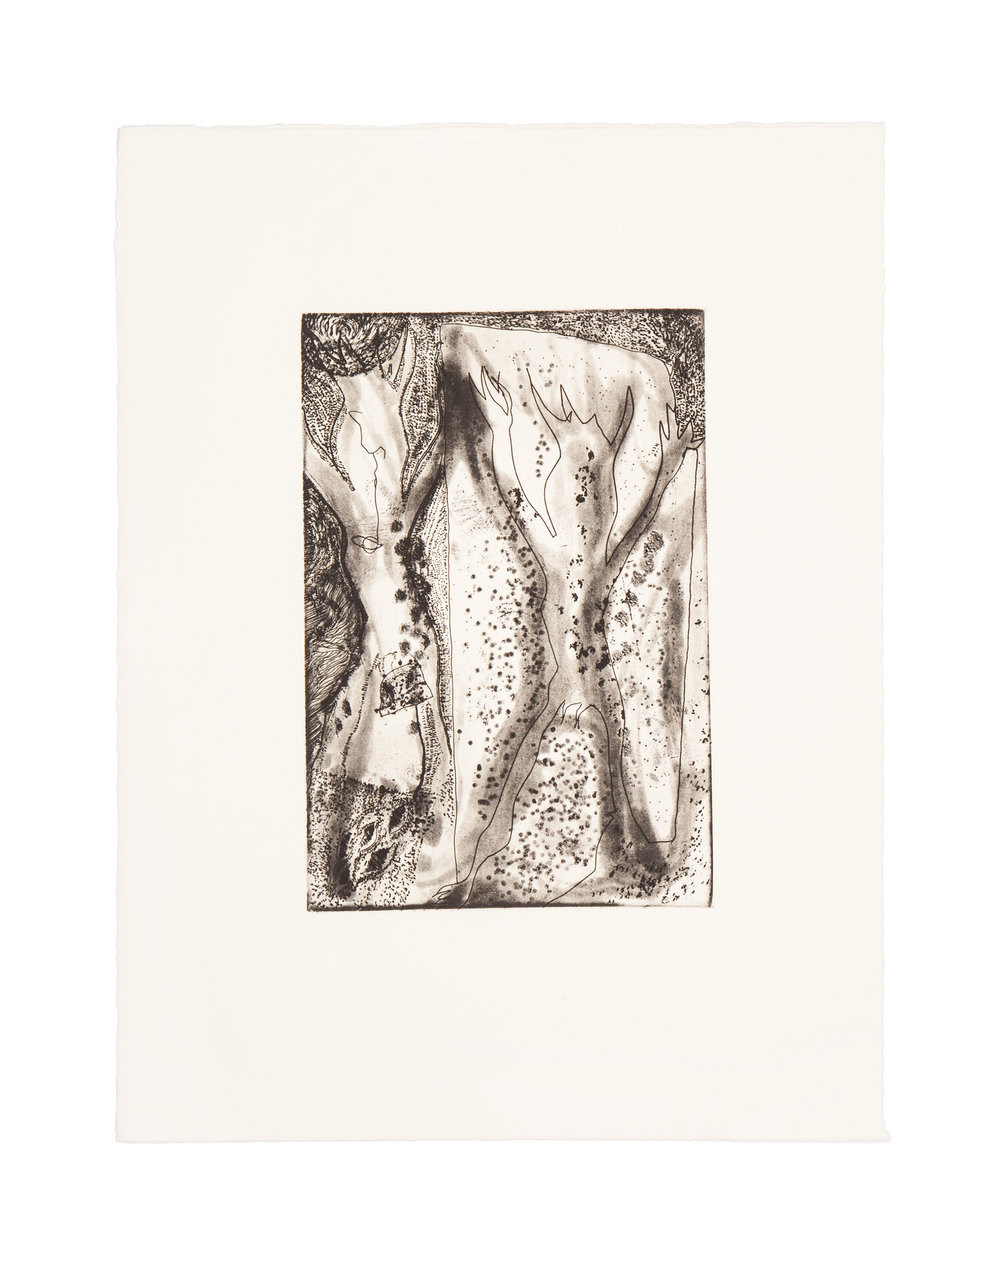 BREAK  Intaglio/monoprint  Image: 6 x 8.9 inches  Paper: 11 x 15 inches  Printed by 10 Grand Press  © 2008 Carol Morrison